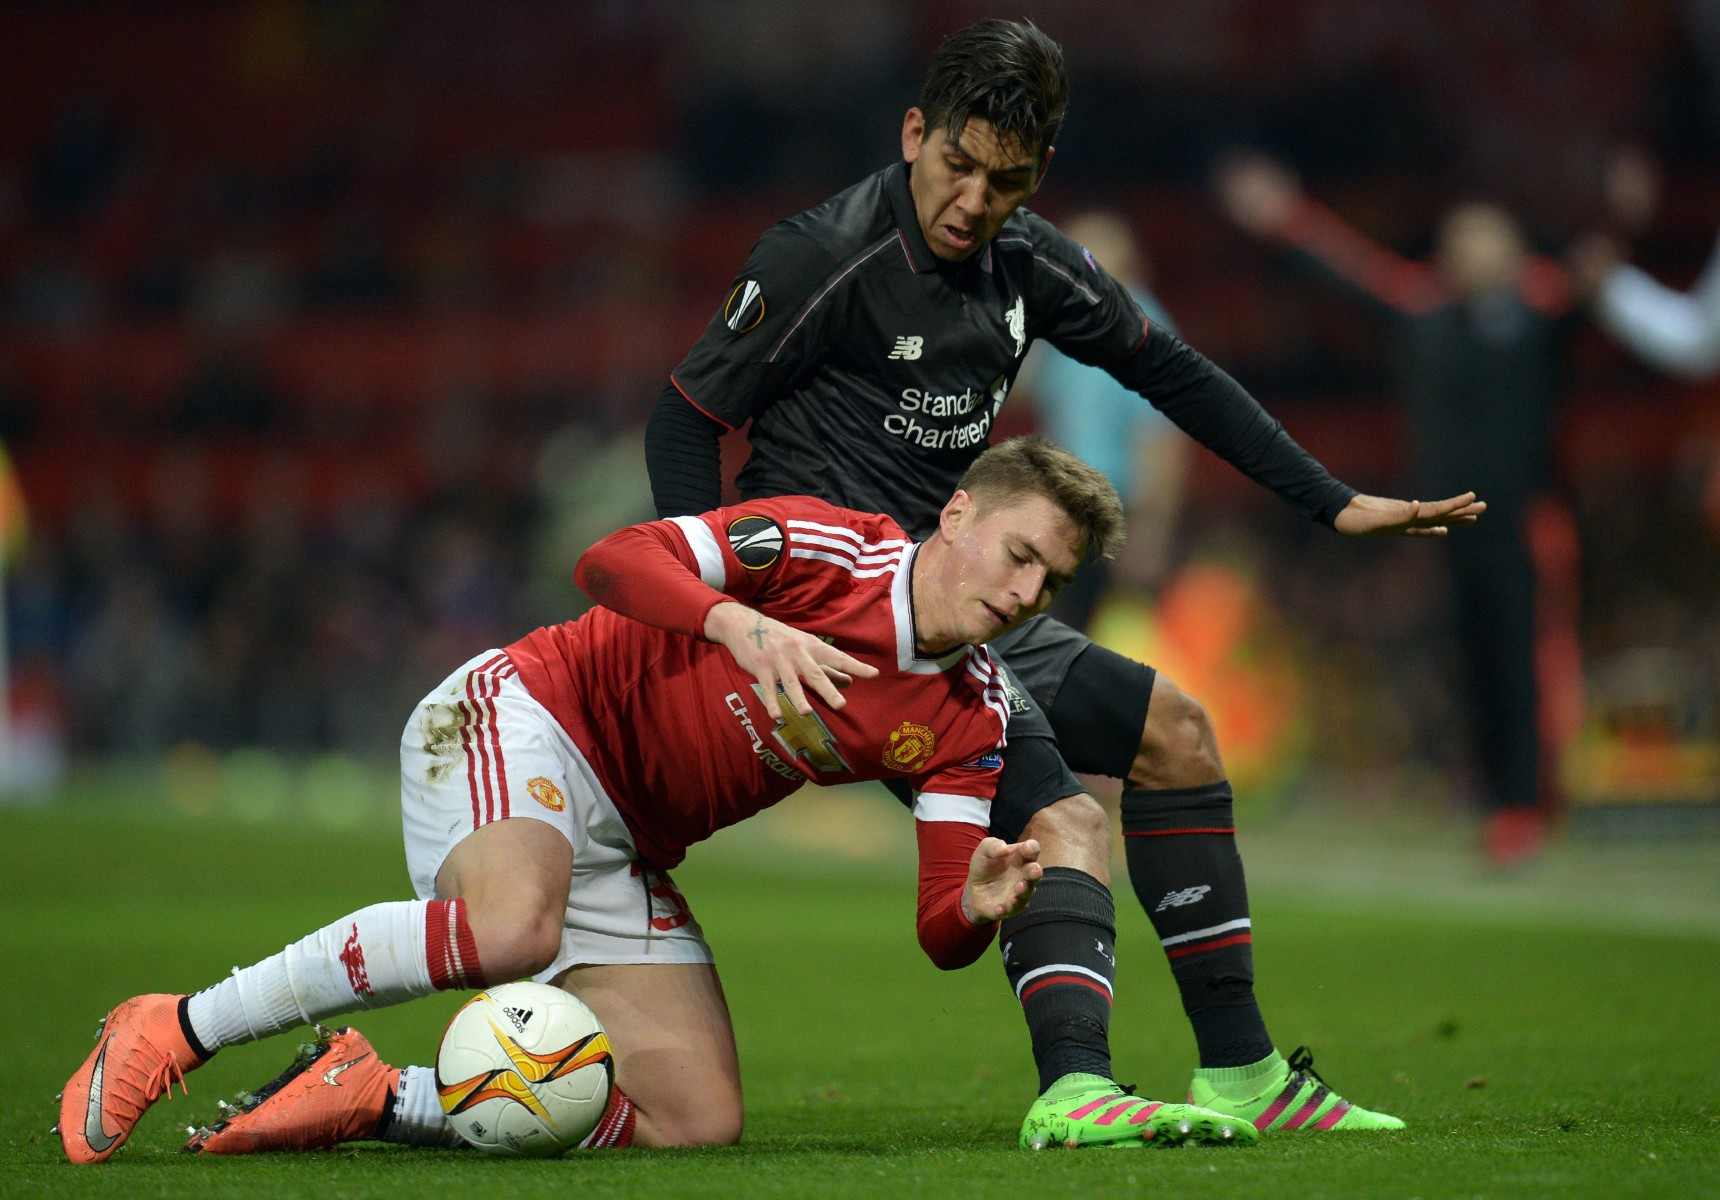 Varela's final game for the Red Devils was a 1-1 draw with Liverpool in the Europa League as Philippe Coutinho scored